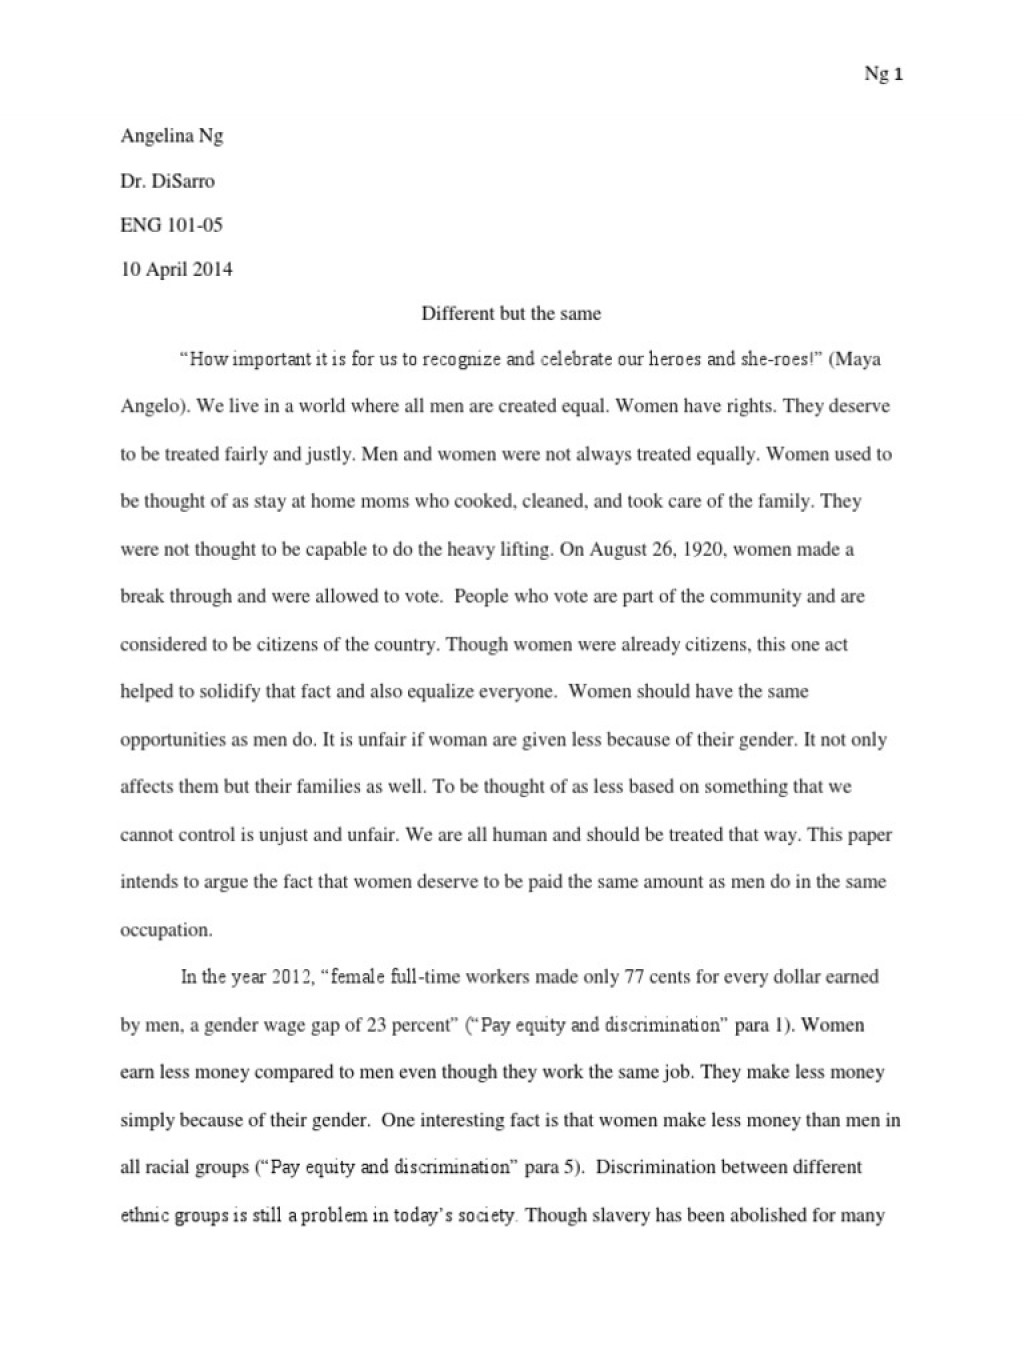 Blessing of science essay 120 words